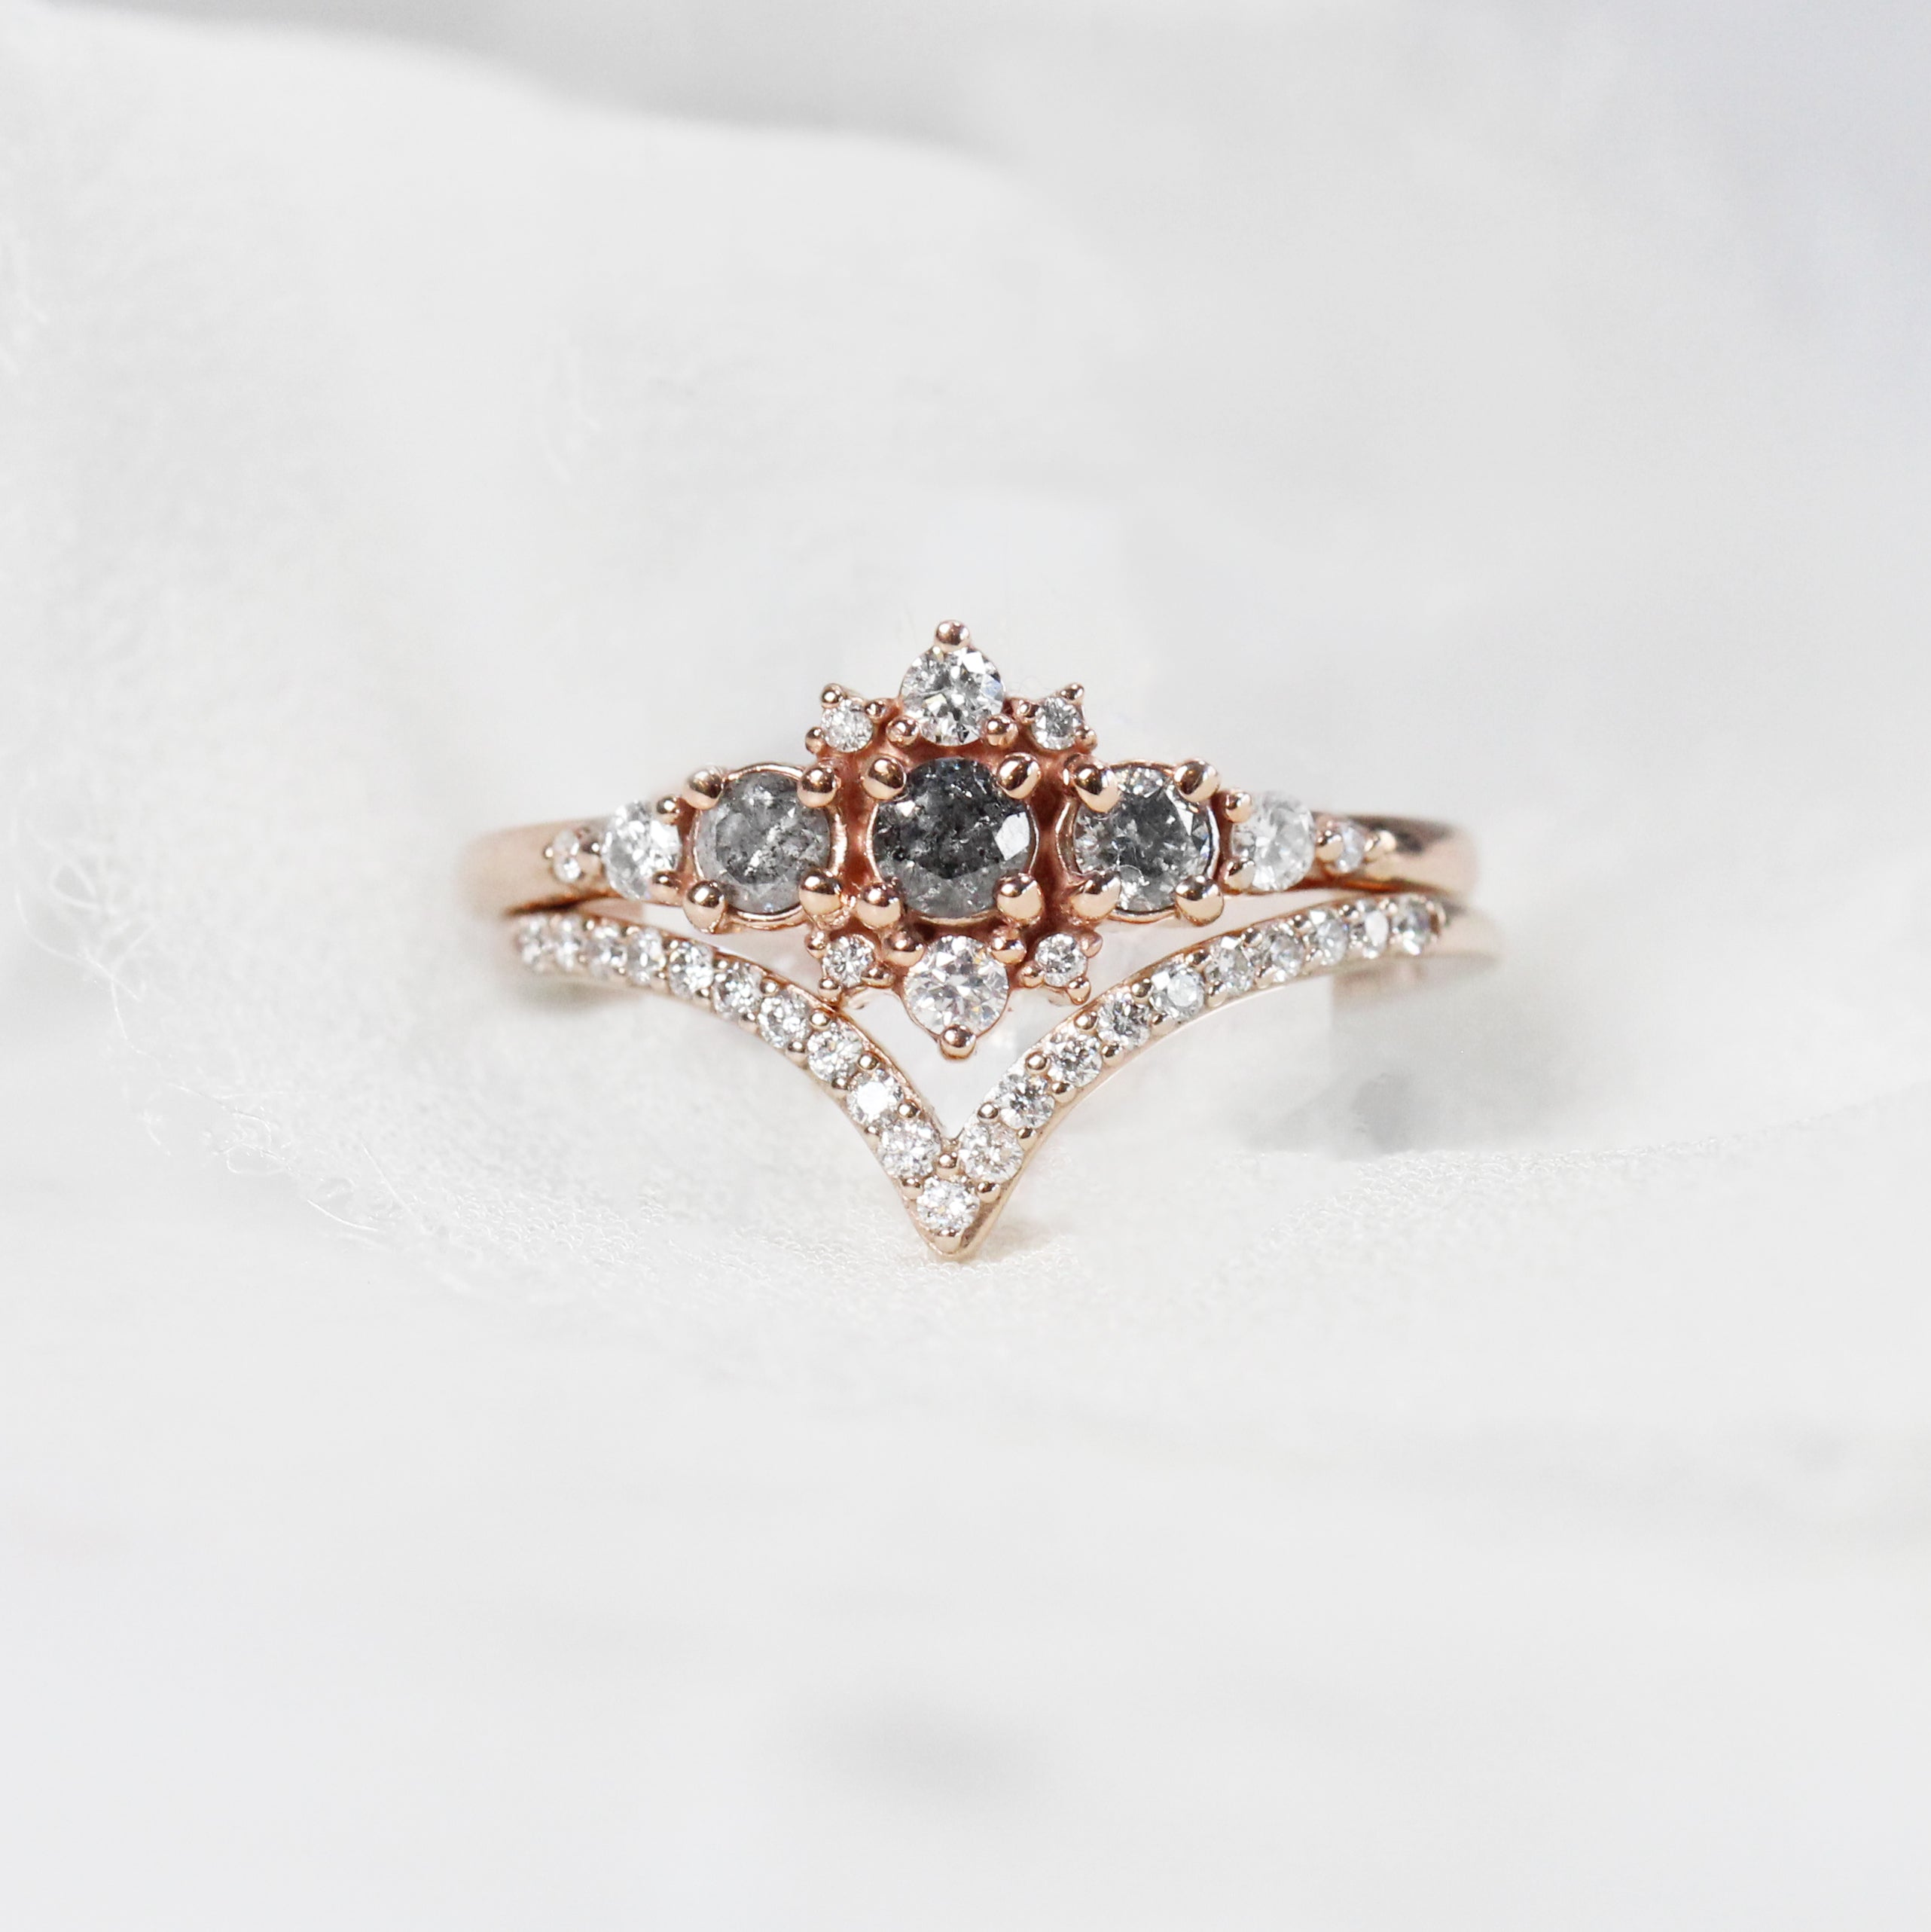 Victoria Ring with Three Celestial Gray Diamonds - Your choice of gold - Custom - Celestial Diamonds ® by Midwinter Co.